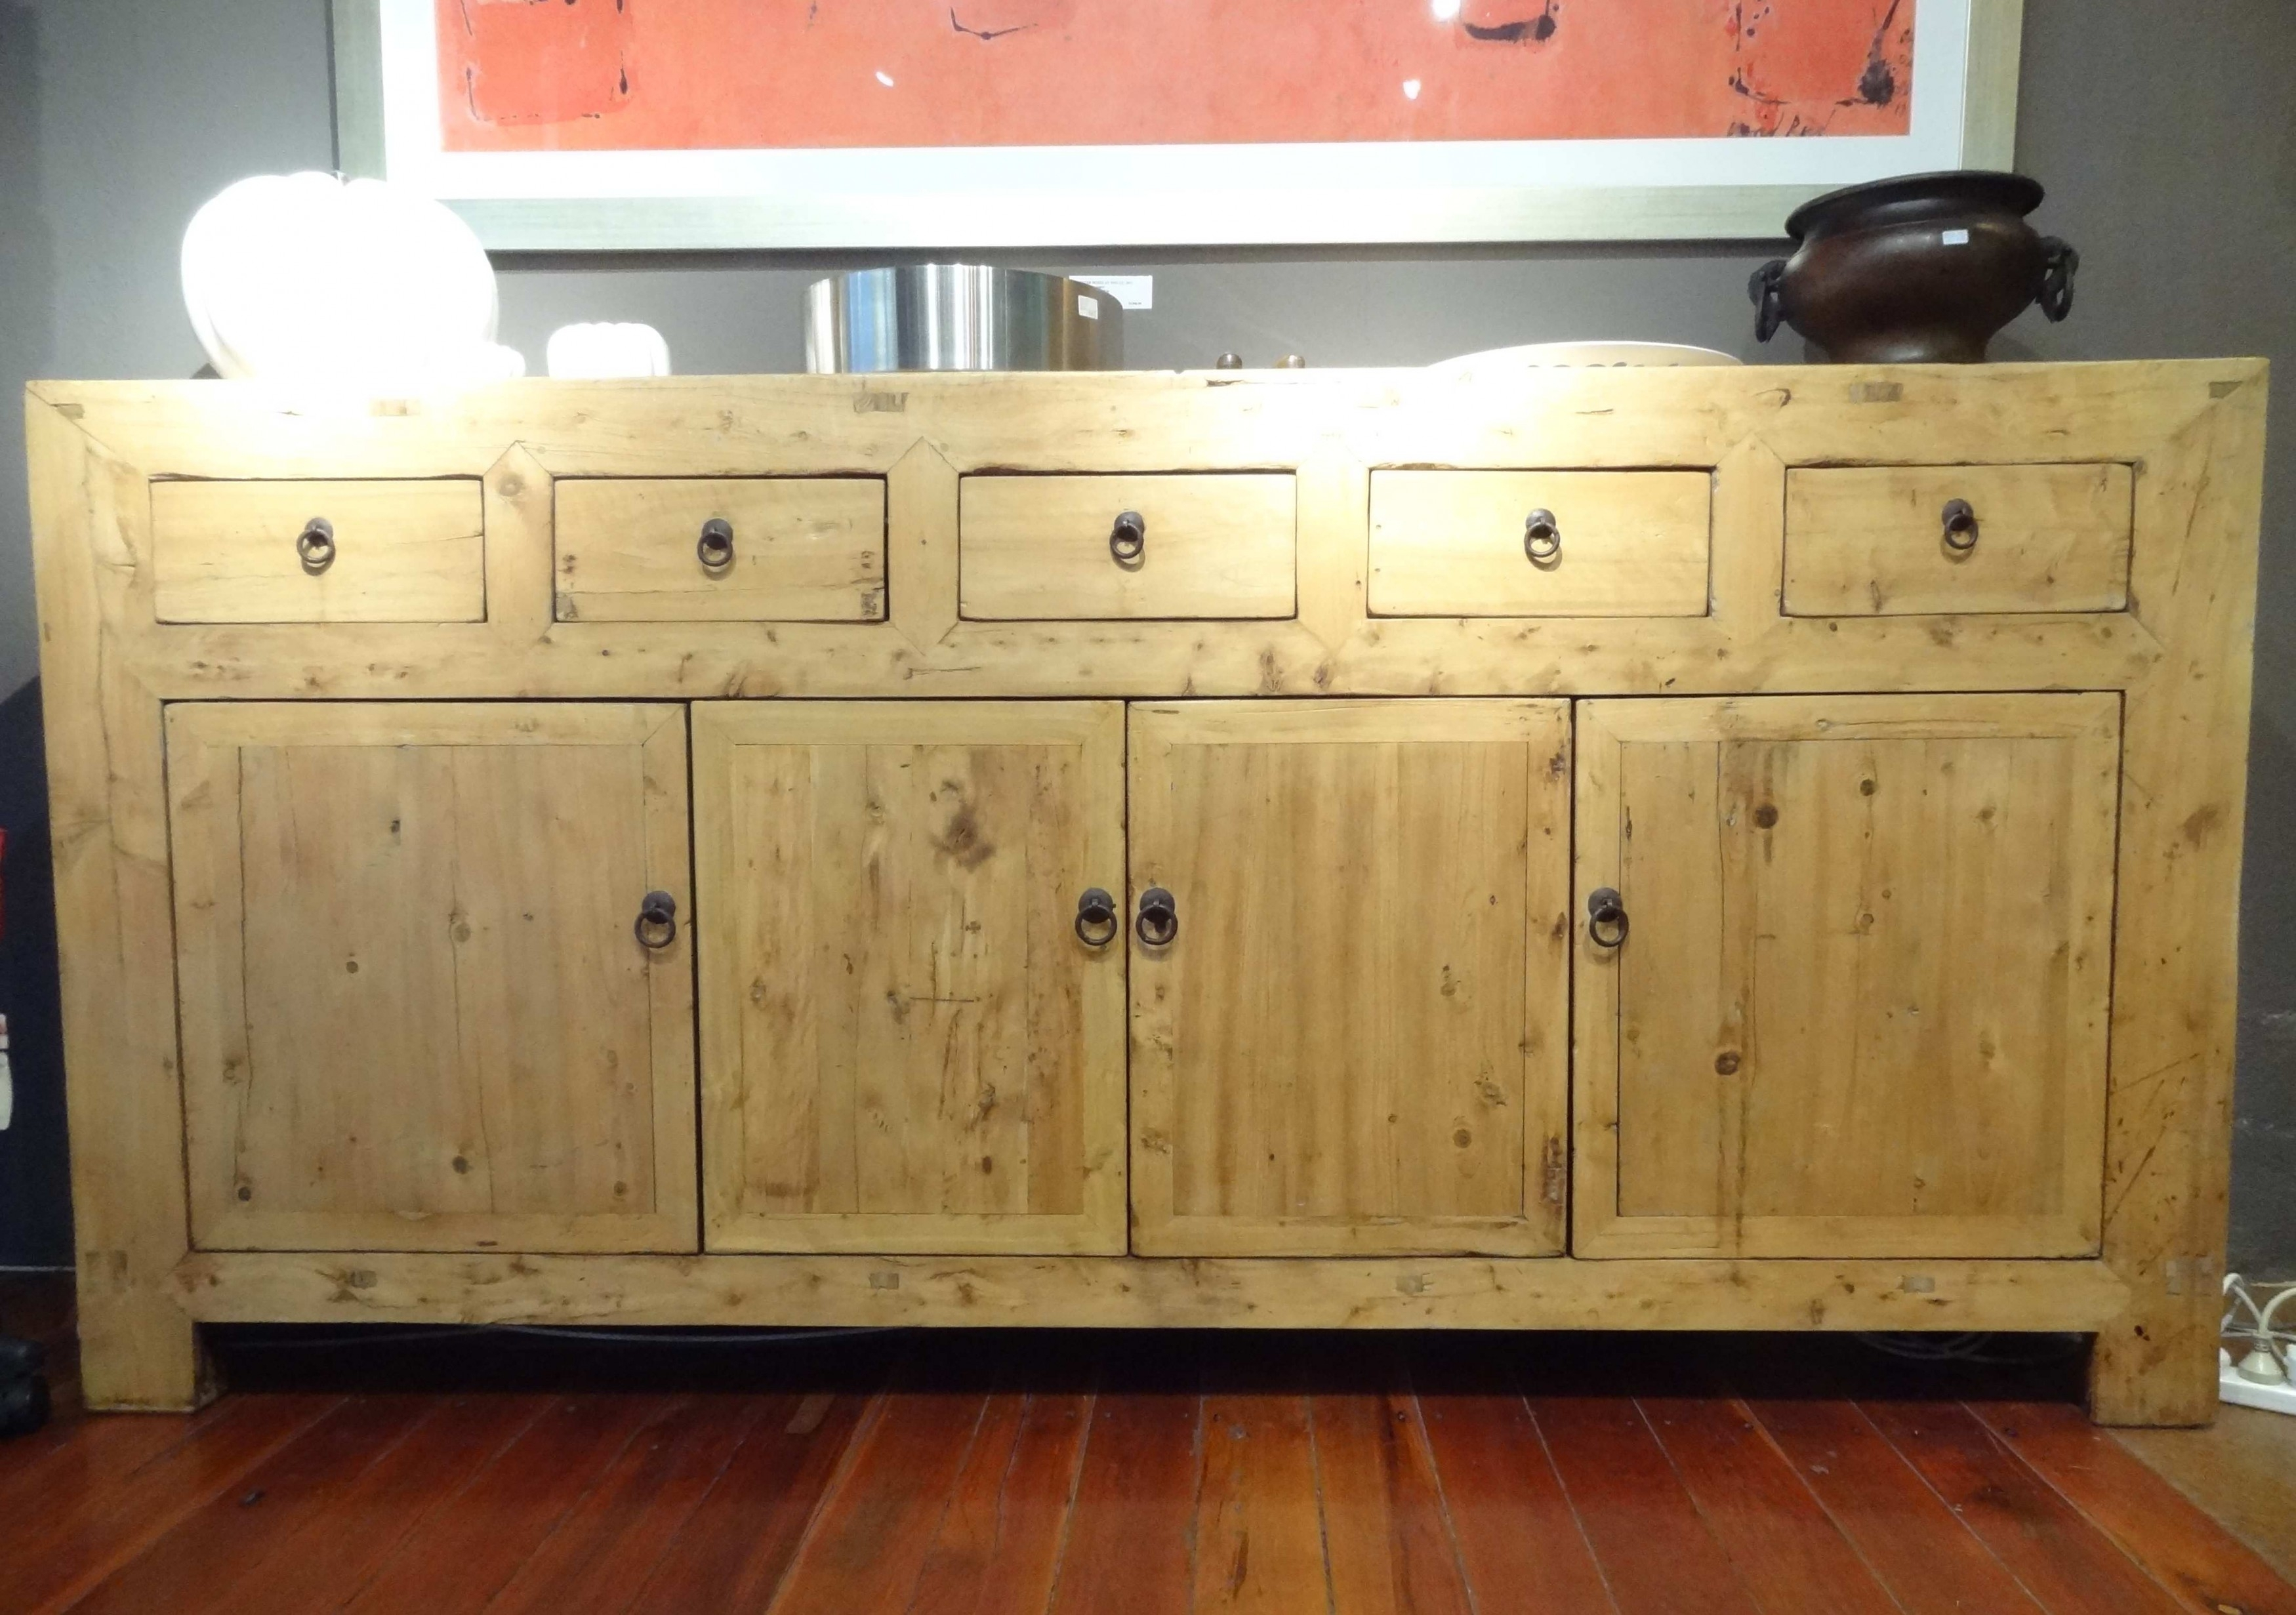 Antique Sideboards | Gallery Categories | Aptos Cruz With Regard To Current Vintage Finish 4 Door Sideboards (View 13 of 20)